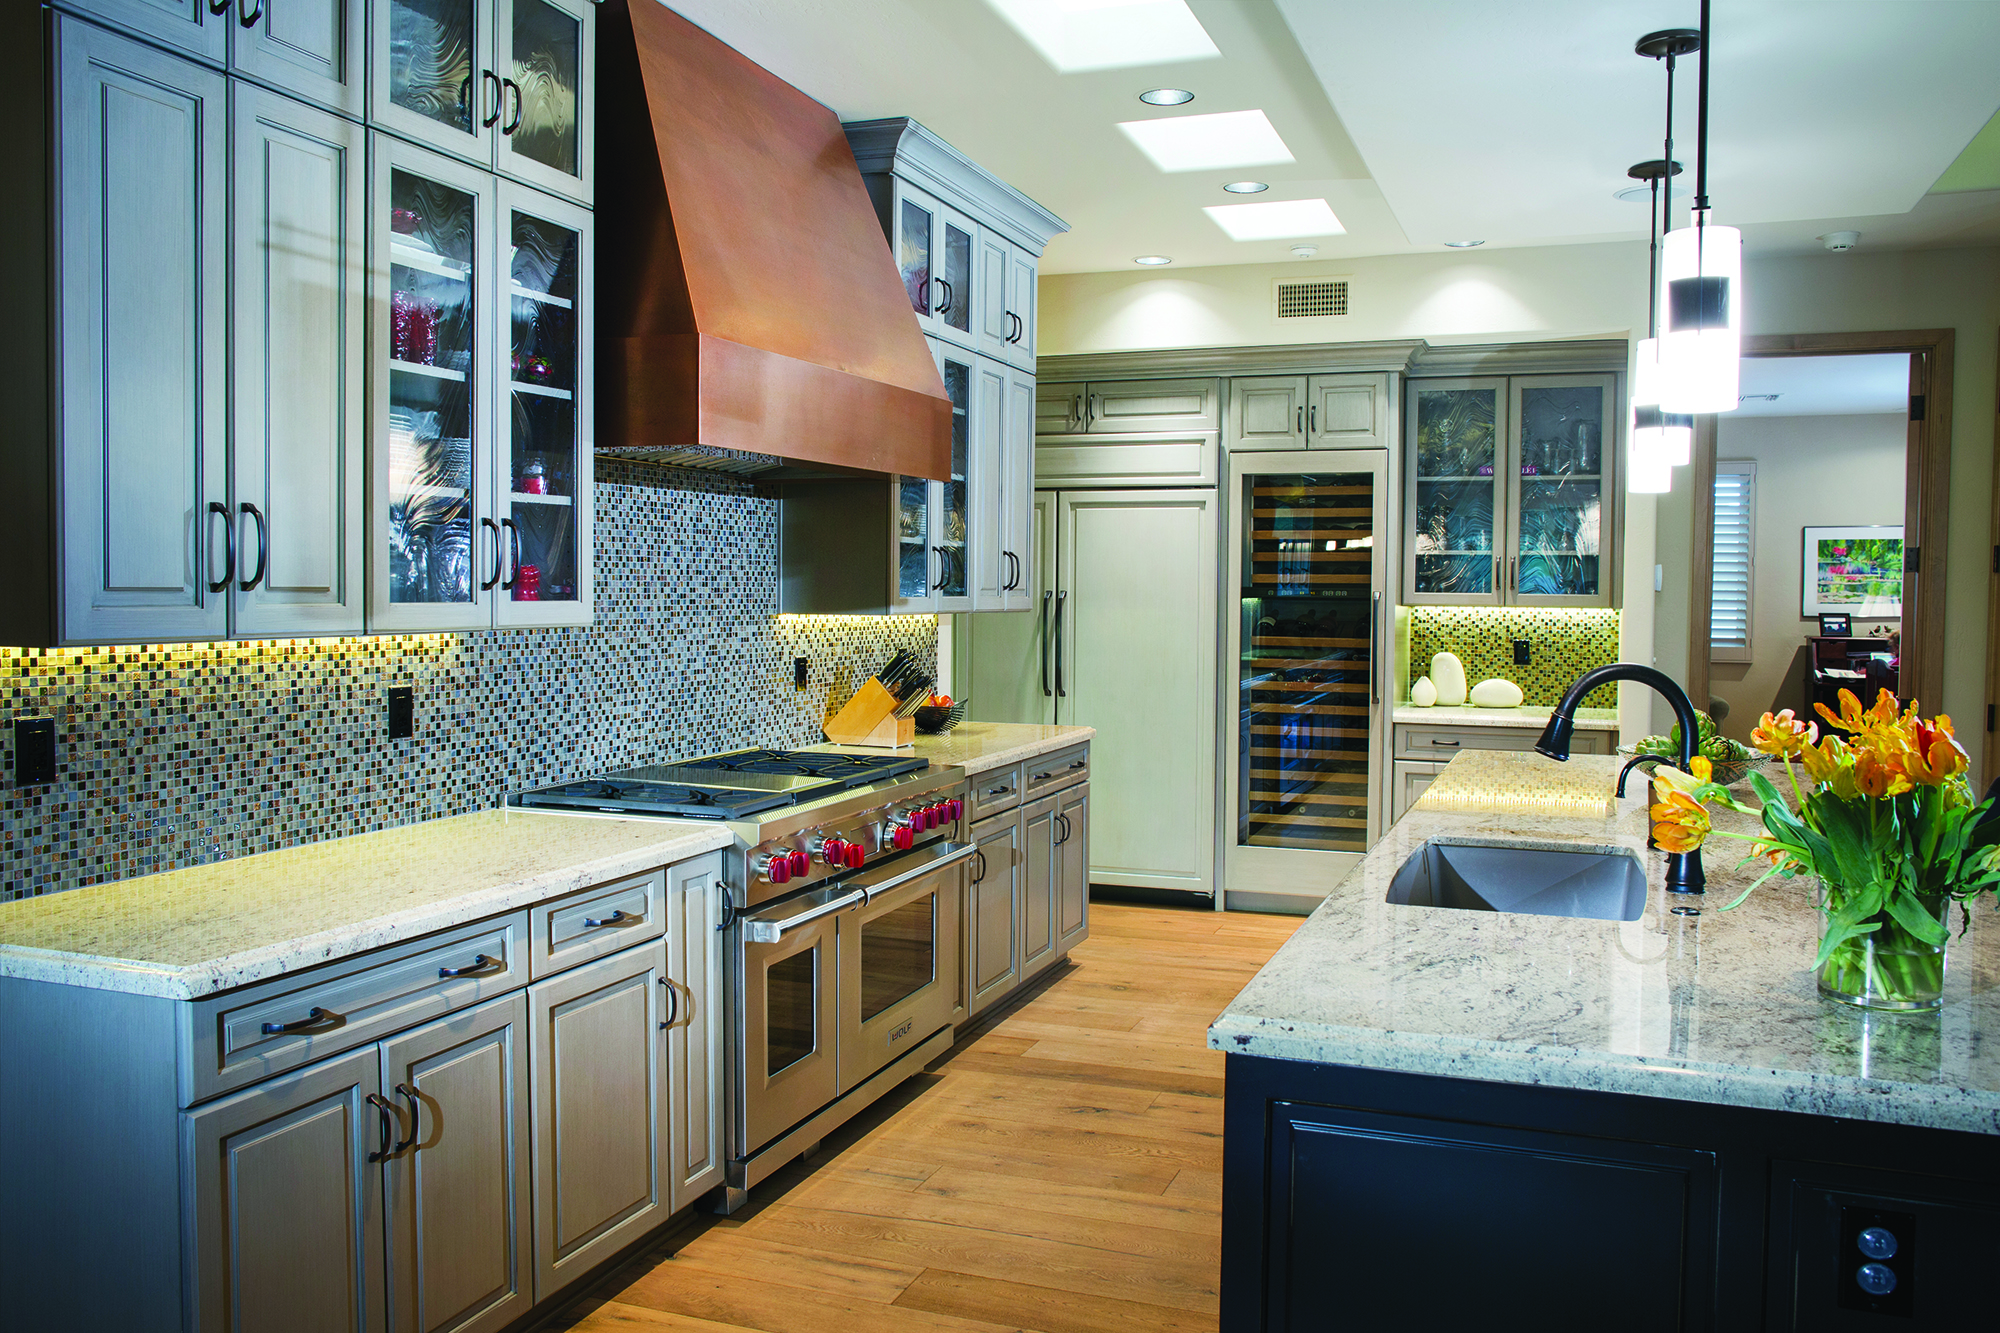 Executive Cabinetry is GREENGUARD Gold Certified, uses waterborne finishes and offers the option for FSC-certified woods.